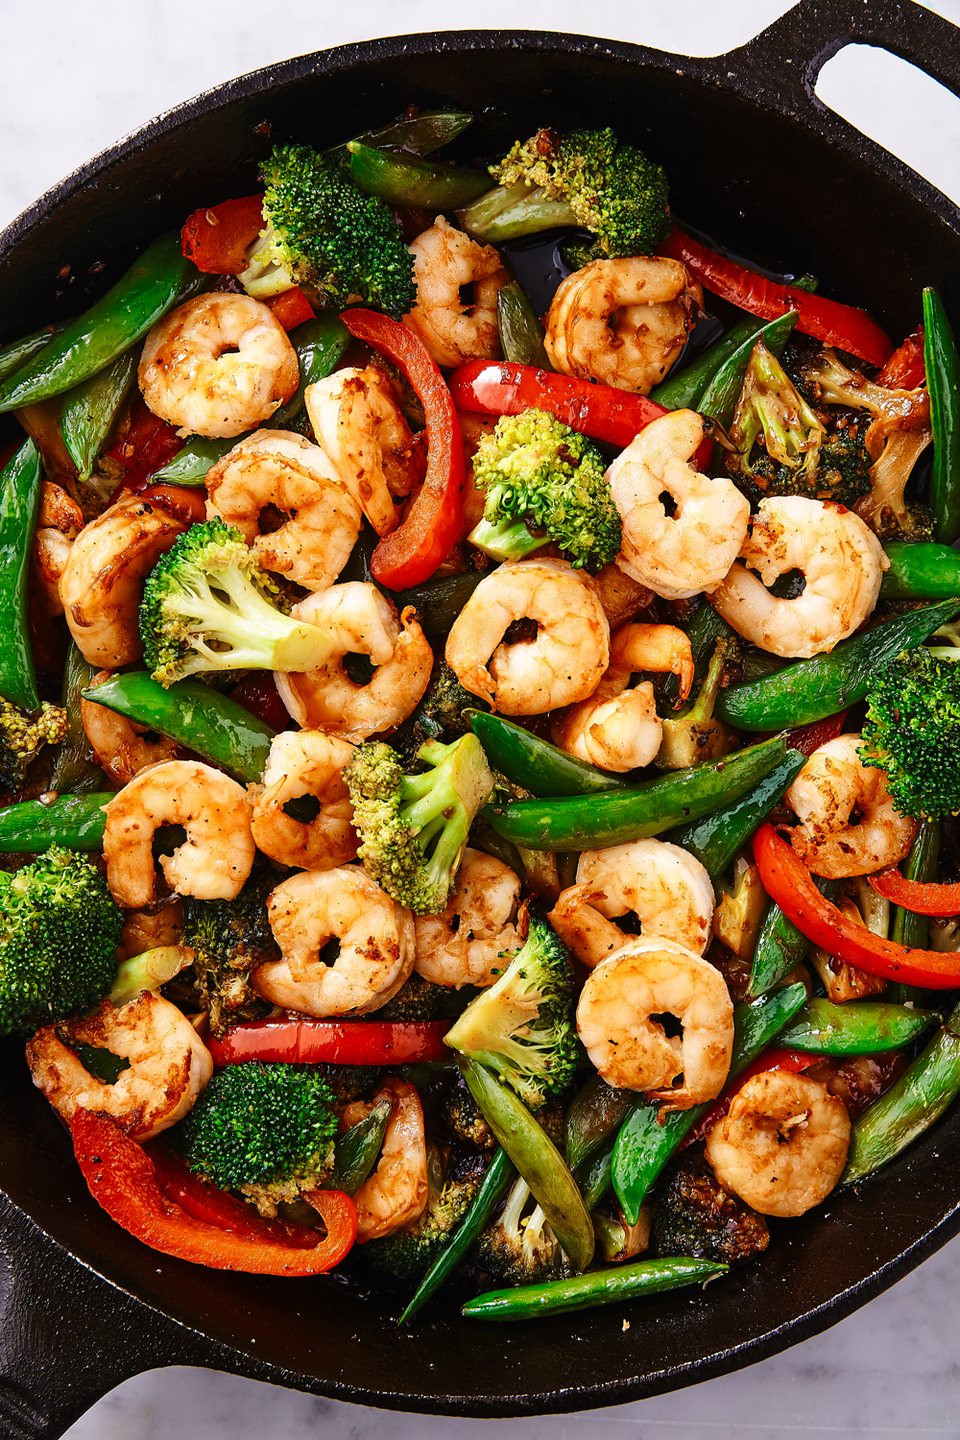 """<p>So simple to throw together with sooo much flavor. </p><p>Get the recipe from <a href=""""https://www.delish.com/cooking/recipe-ideas/a25636180/shrimp-stir-fry-recipe/"""" rel=""""nofollow noopener"""" target=""""_blank"""" data-ylk=""""slk:Delish"""" class=""""link rapid-noclick-resp"""">Delish</a>. </p>"""